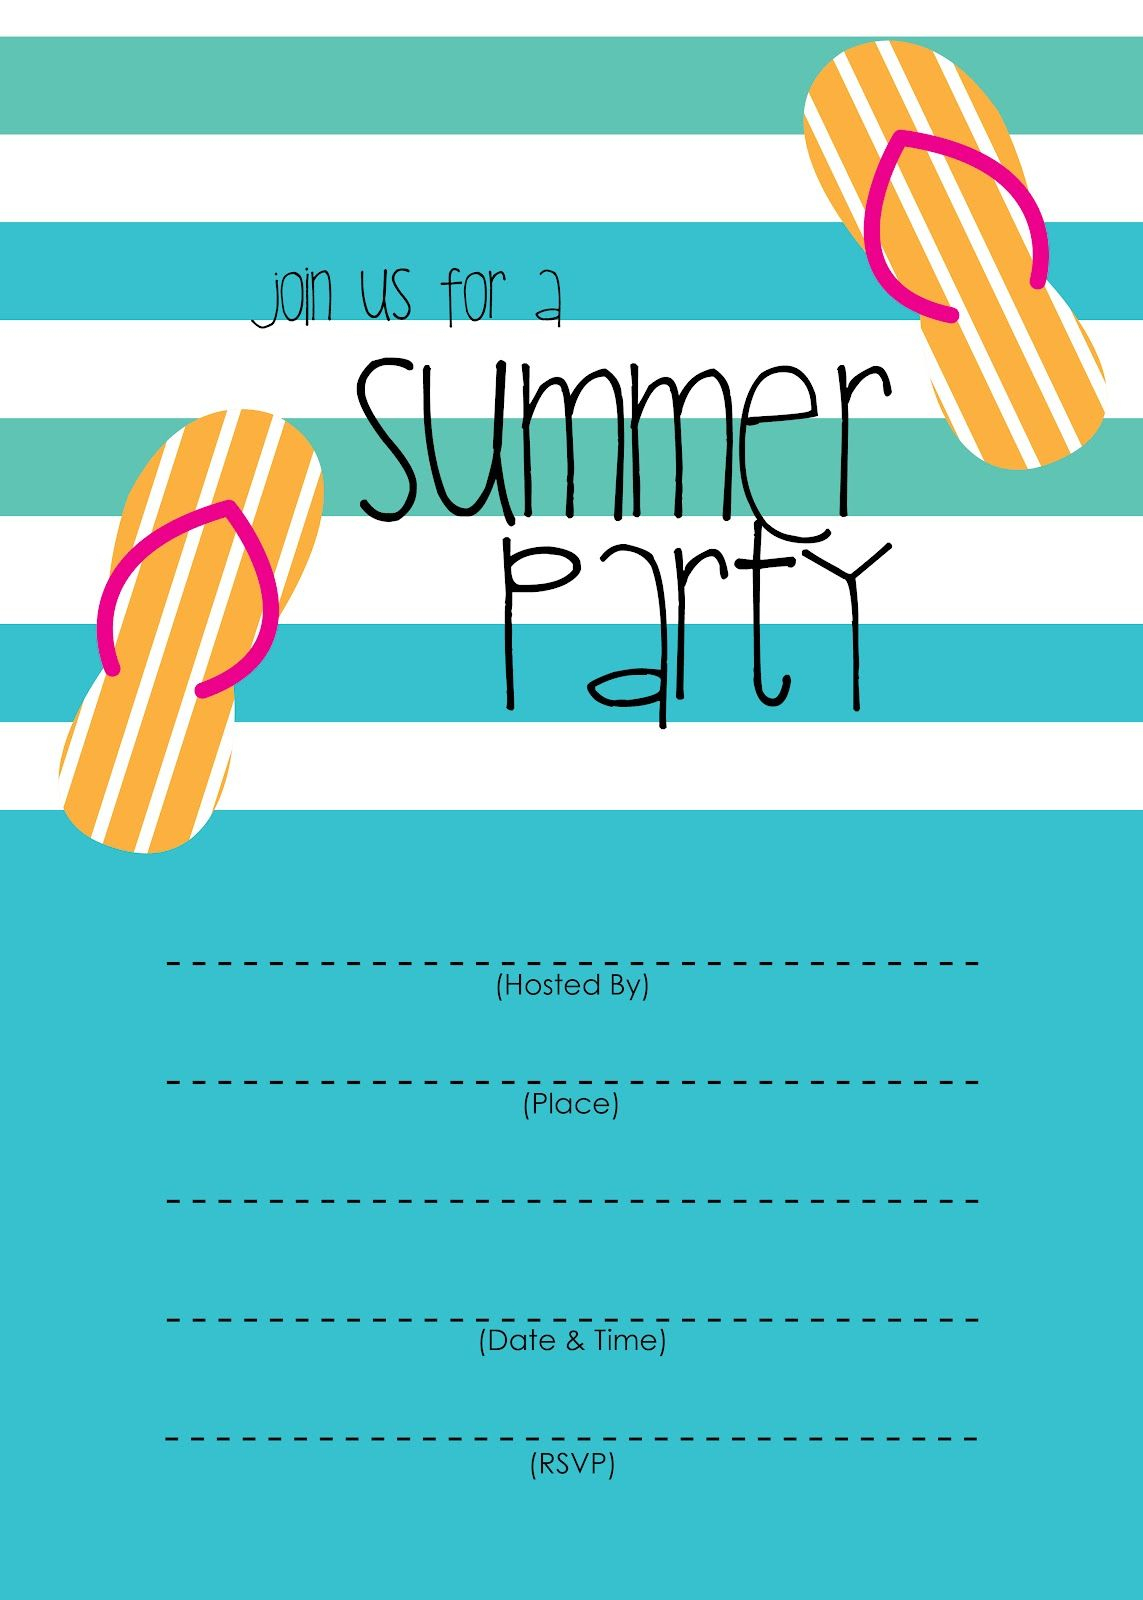 Summer Party Invitation – Free Printable | End Of Year Party Ideas - Free Printable Pool Party Invitation Cards